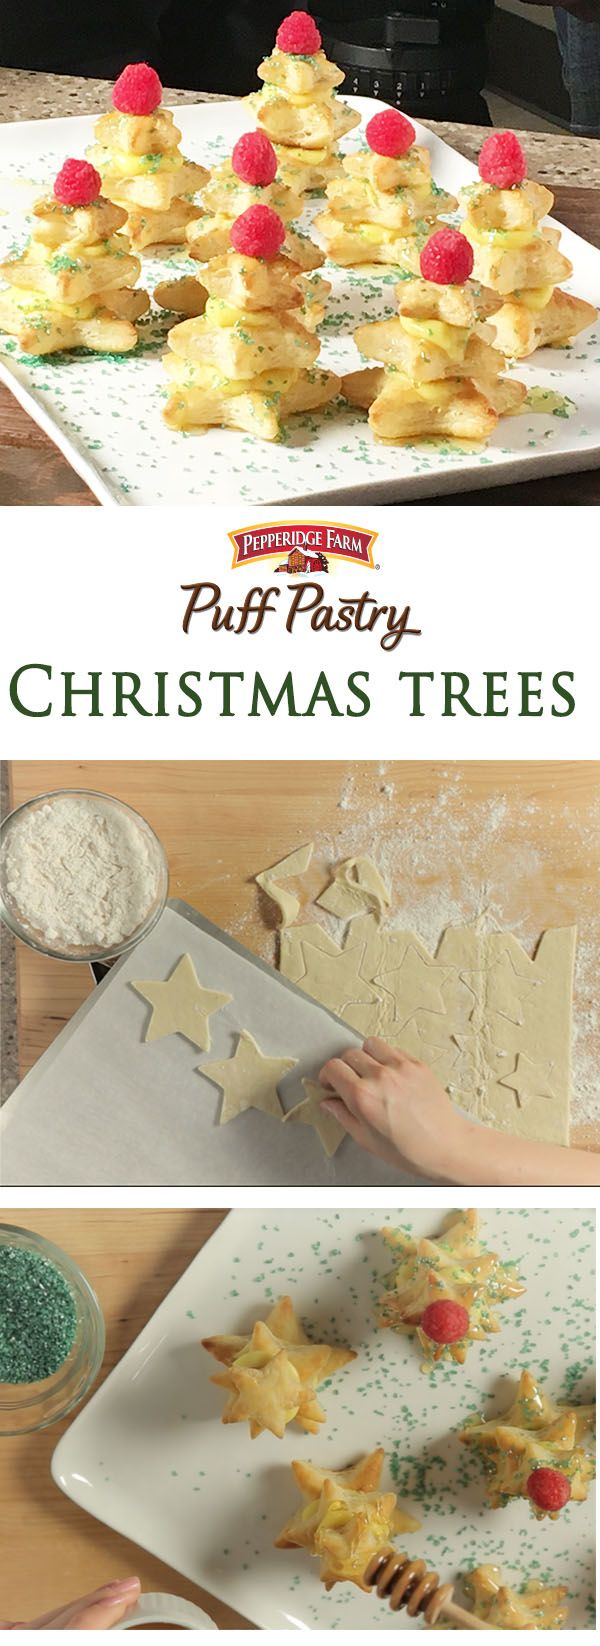 Puff Pastry Christmas Trees Recipe. Oh what fun it is to make these charming Puff Pastry Christmas Trees. Use star cookie cutters in graduated sizes to build a little dessert forest. Simply layer with vanilla pudding, drizzle with honey and top with colorful sugar. Kids will love to help build and decorate these tasty masterpieces. An impressive dessert for your next holiday party or even just a fun activity with the family.